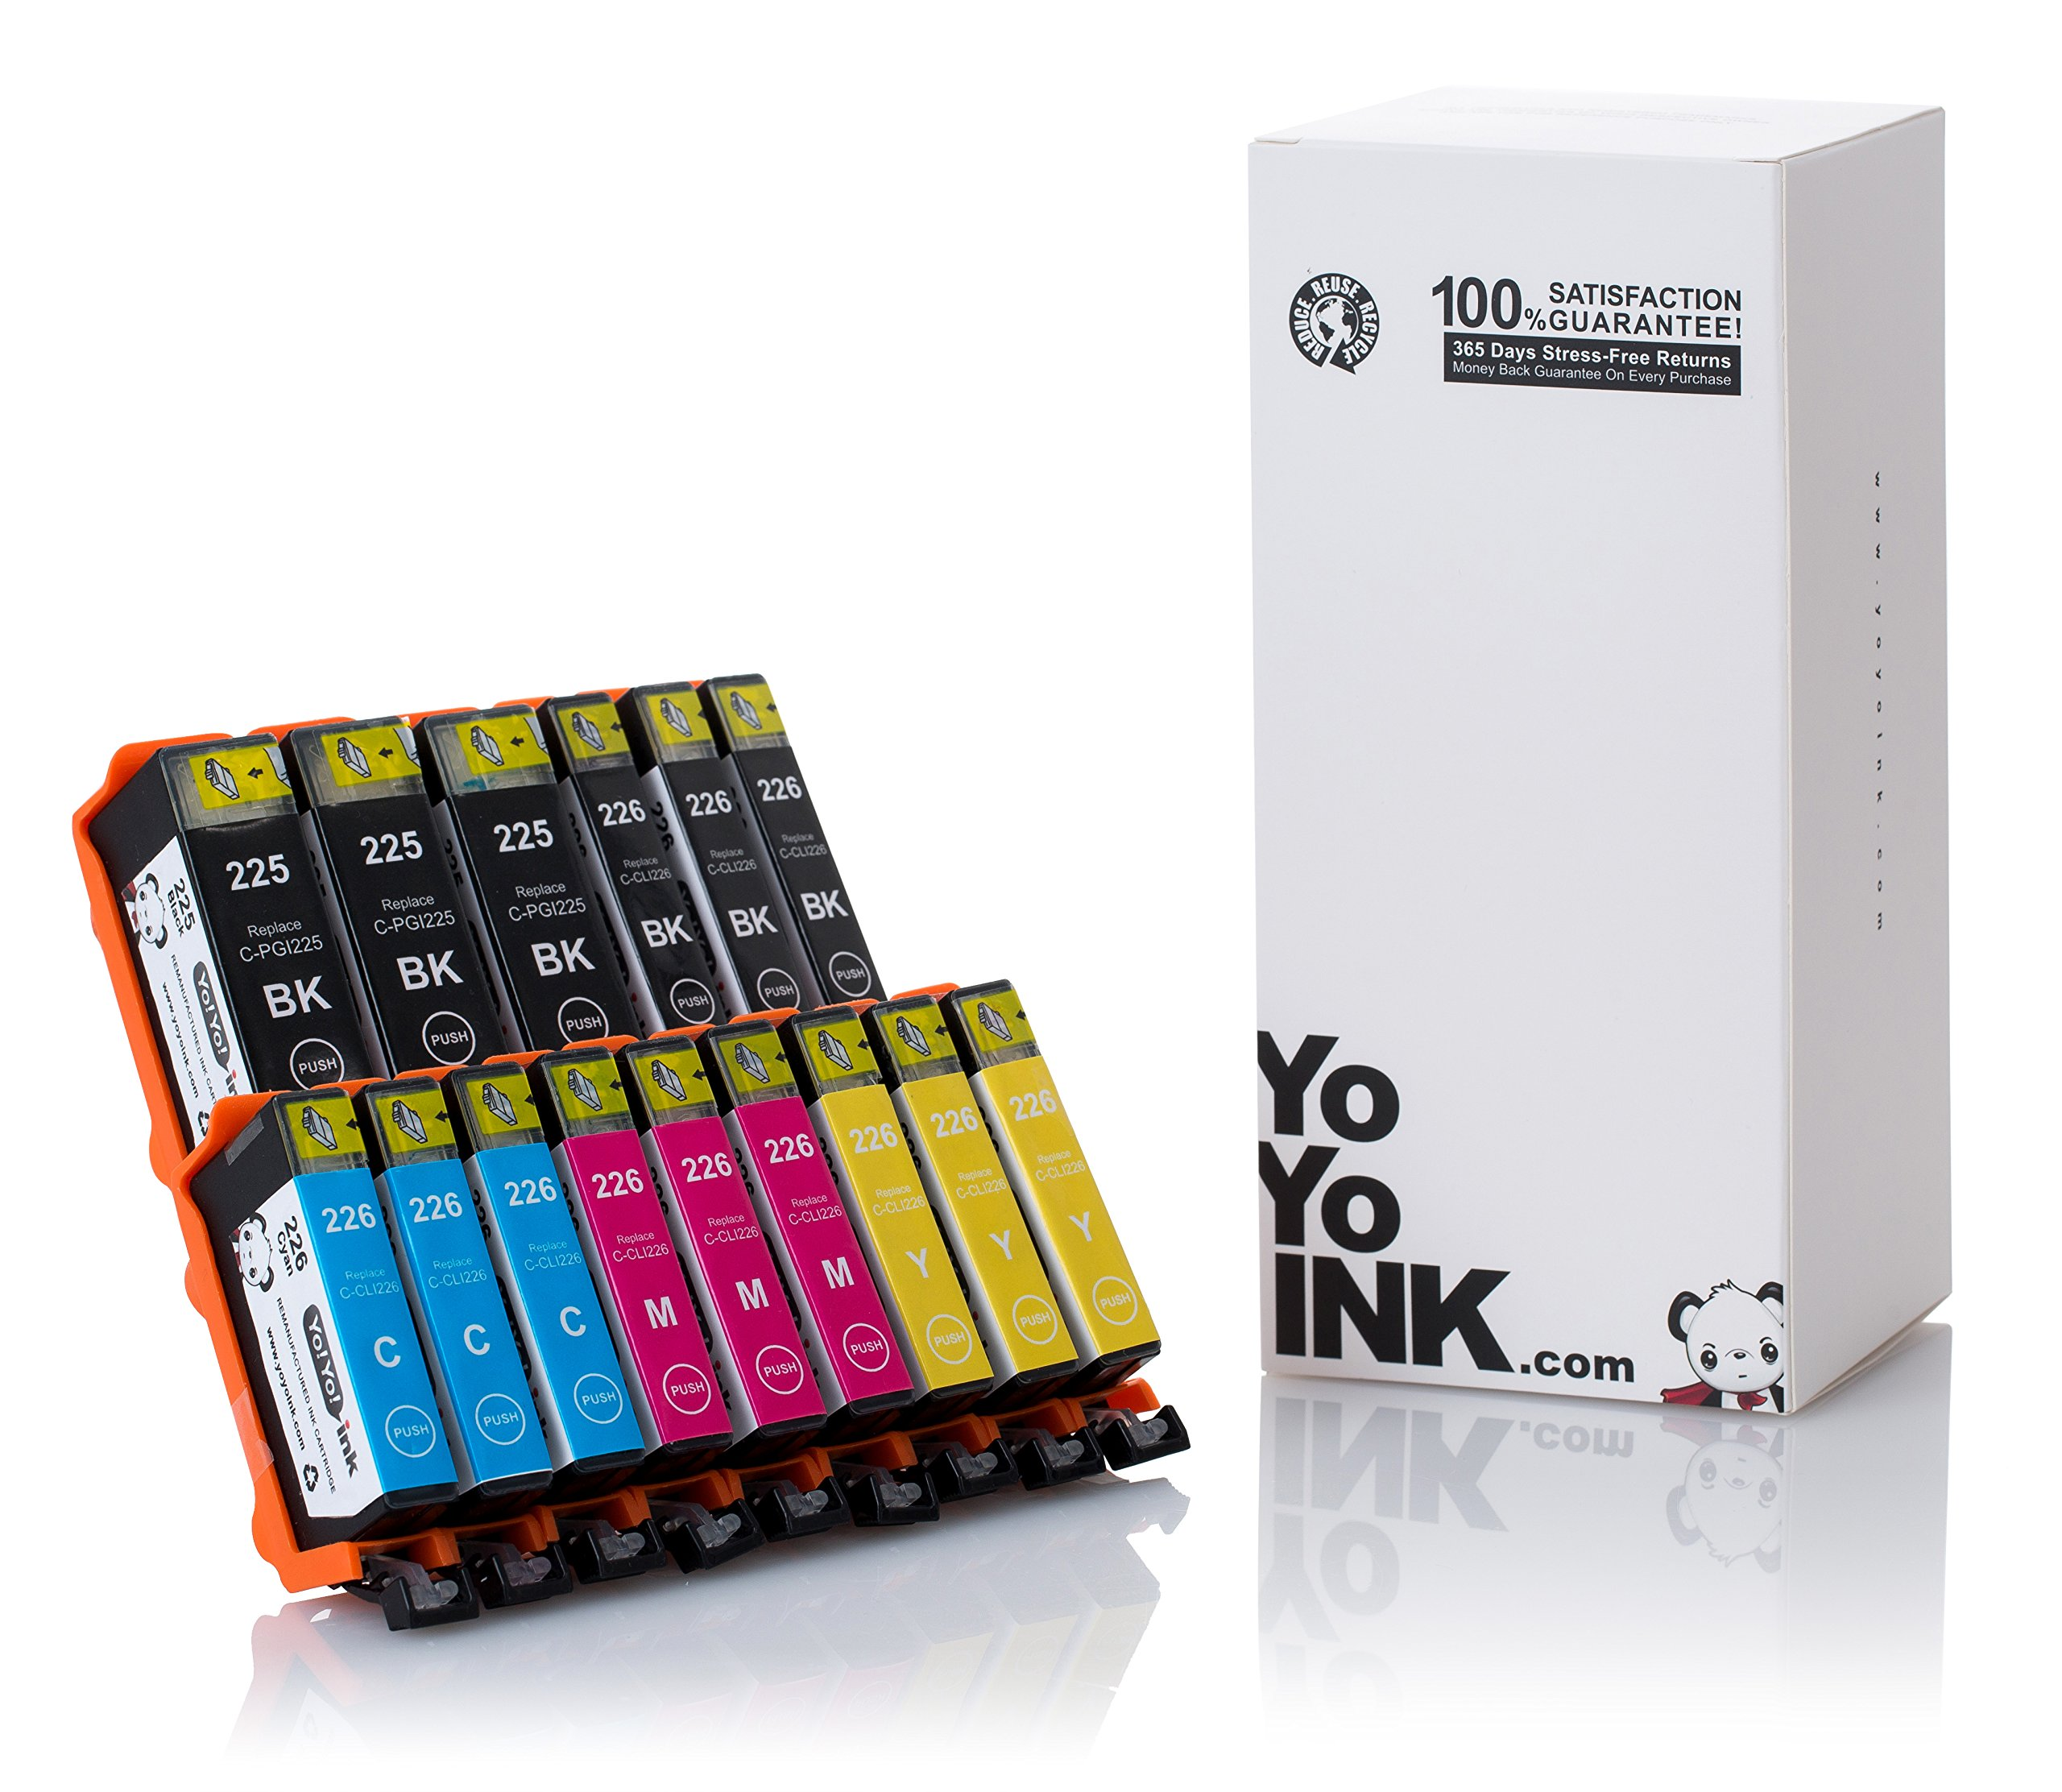 YoYoink Compatible Ink Cartridges Replacement for Canon PGI-225XL 225 / CLI-226XL 226 (3 Black, 3 Small Black, 3 Cyan, 3 Magenta, 3 Yellow; 15 Pack)